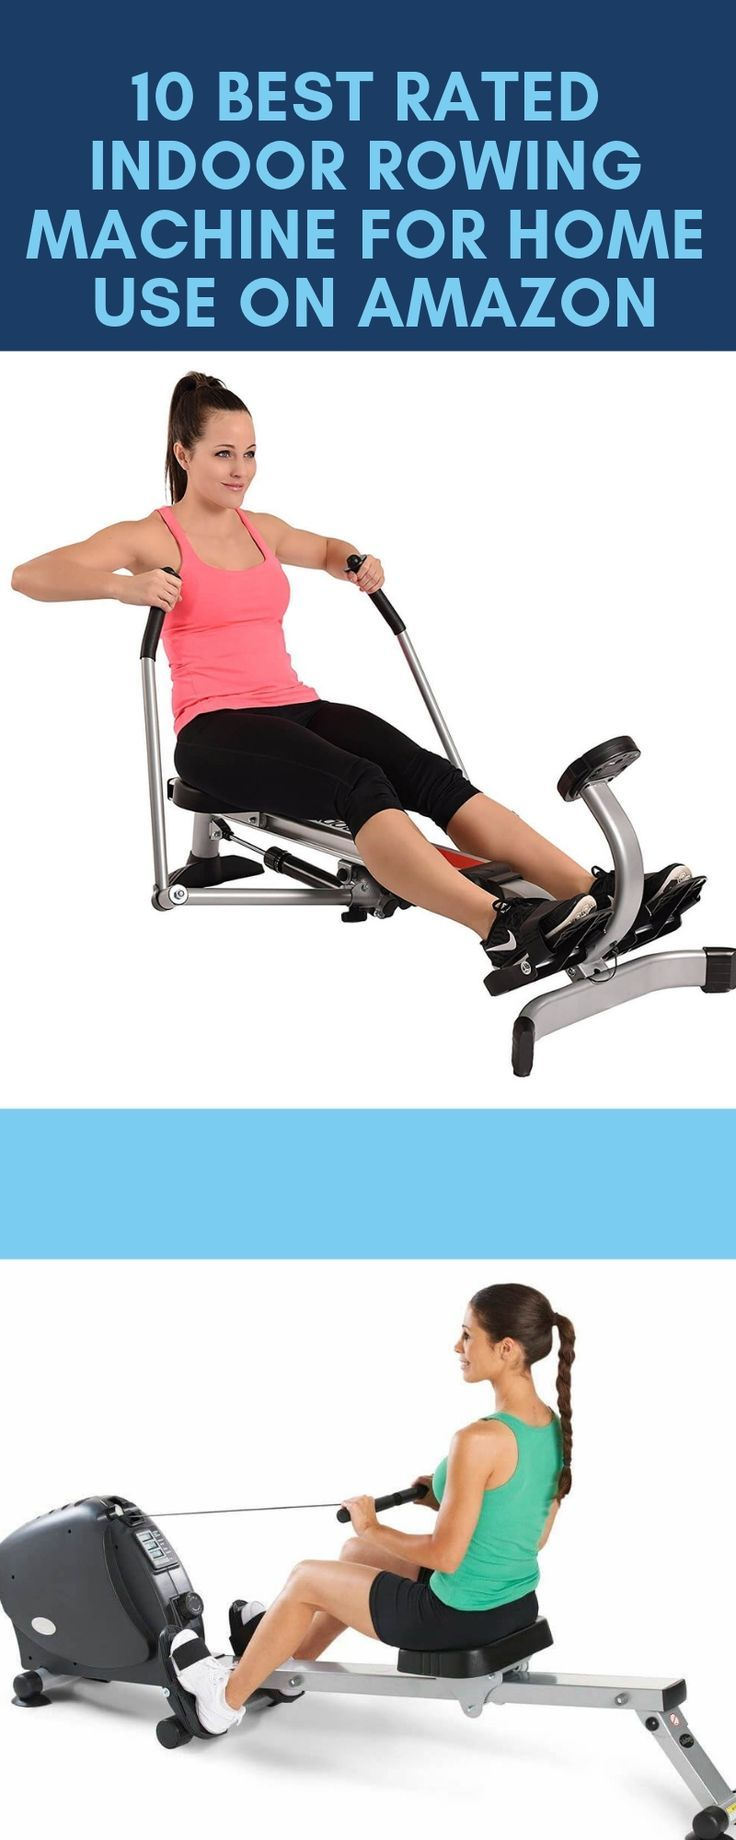 10 Best rated indoor rowing machine for home use on Amazon ...